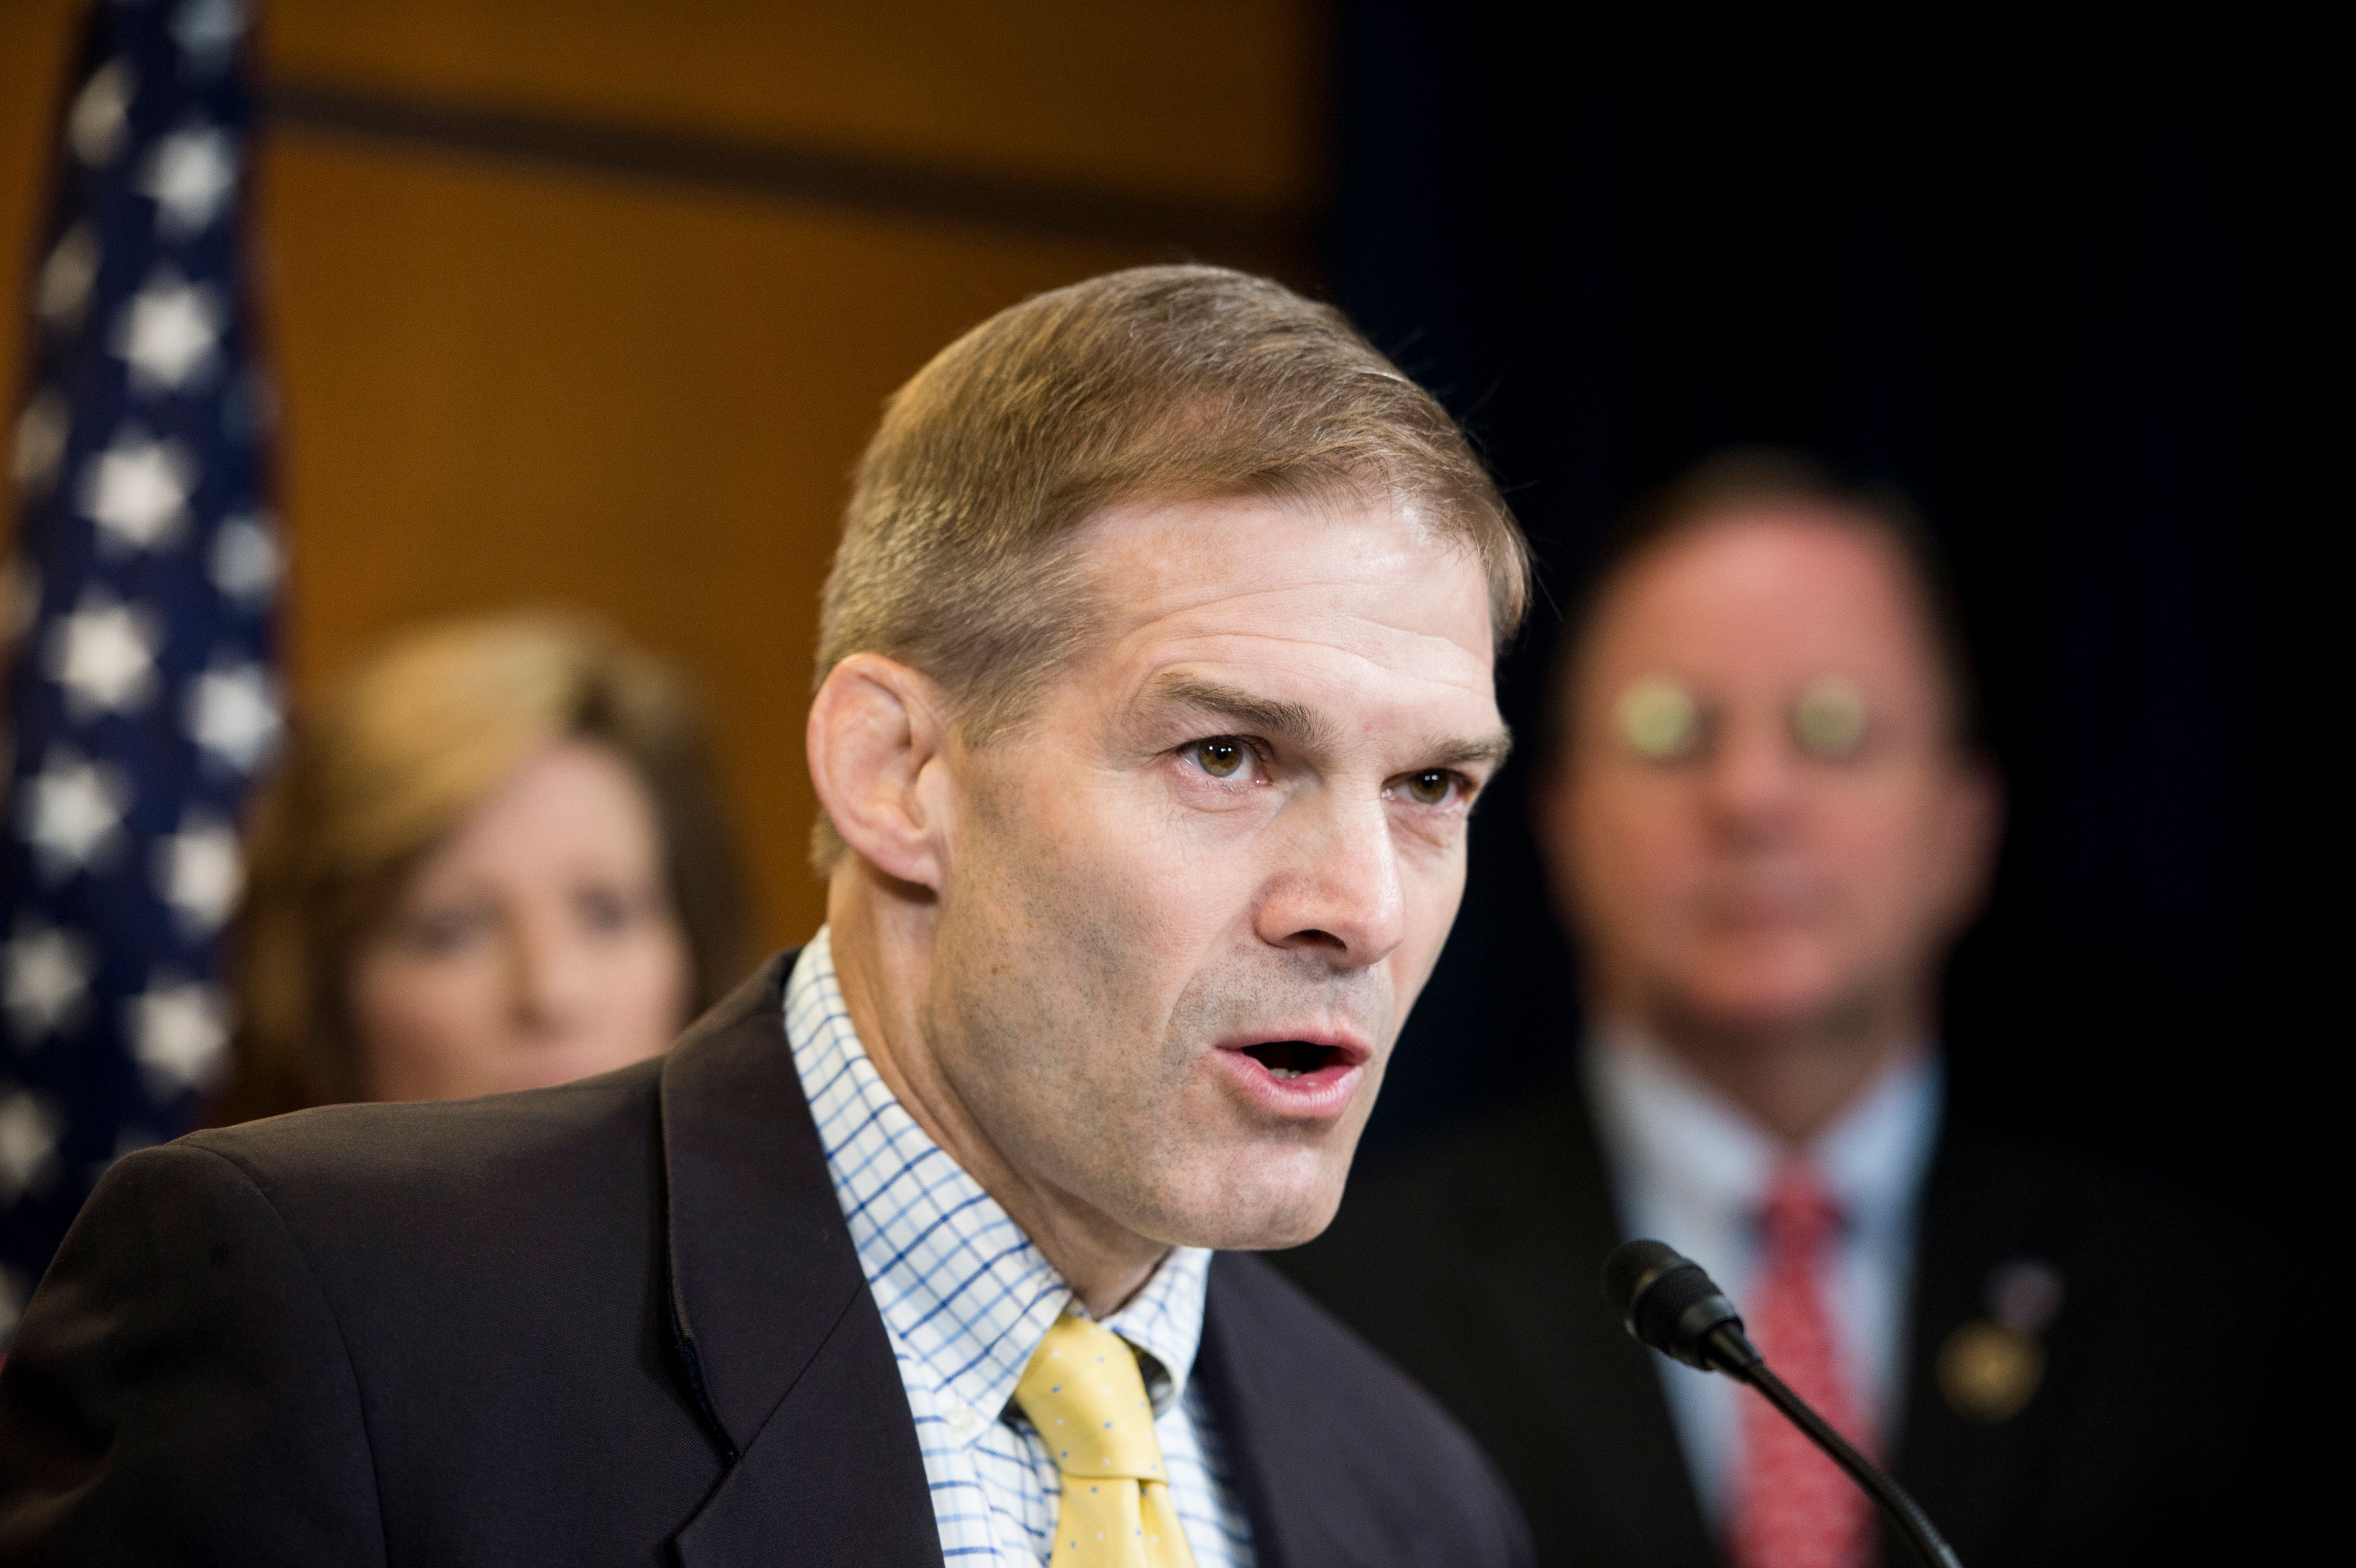 UNITED STATES - JULY 16: Rep. Jim Jordan, R-Ohio, speaks during the Republican Study Committee news conference to 'call on the House and Senate to support the First Amendment Defense Act' on Thursday, July 16, 2015. (Photo By Bill Clark/CQ Roll Call)